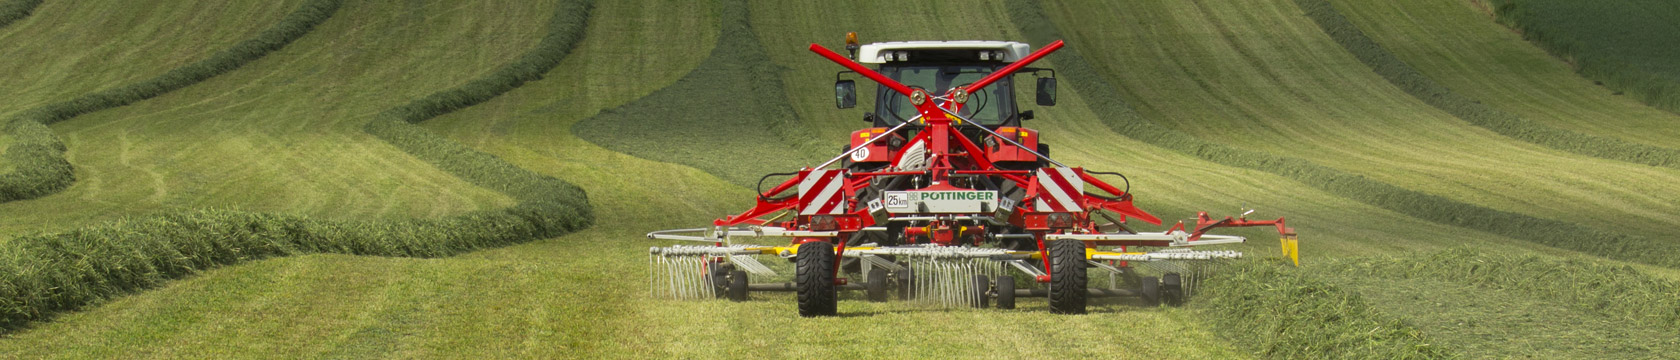 TOP Twin rotor windrowers with side swath